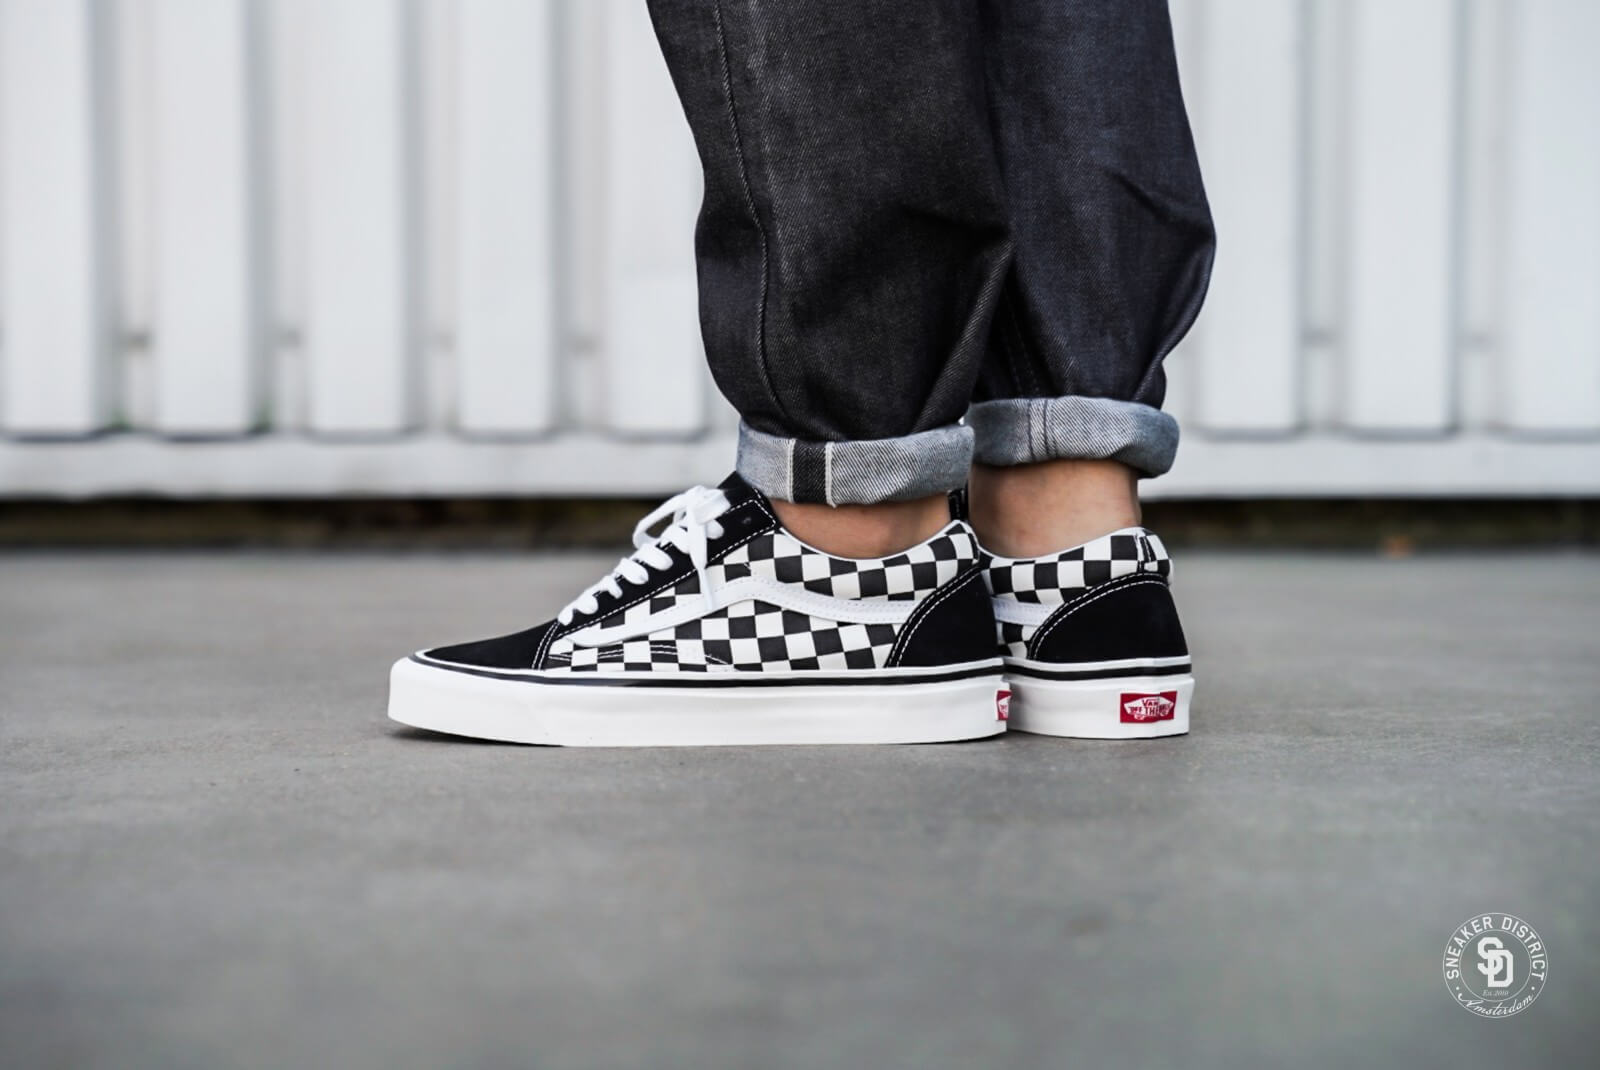 Vans Old Skool 36 DX Anaheim Factory BlackCheckerboard VN0A38G2OAK1